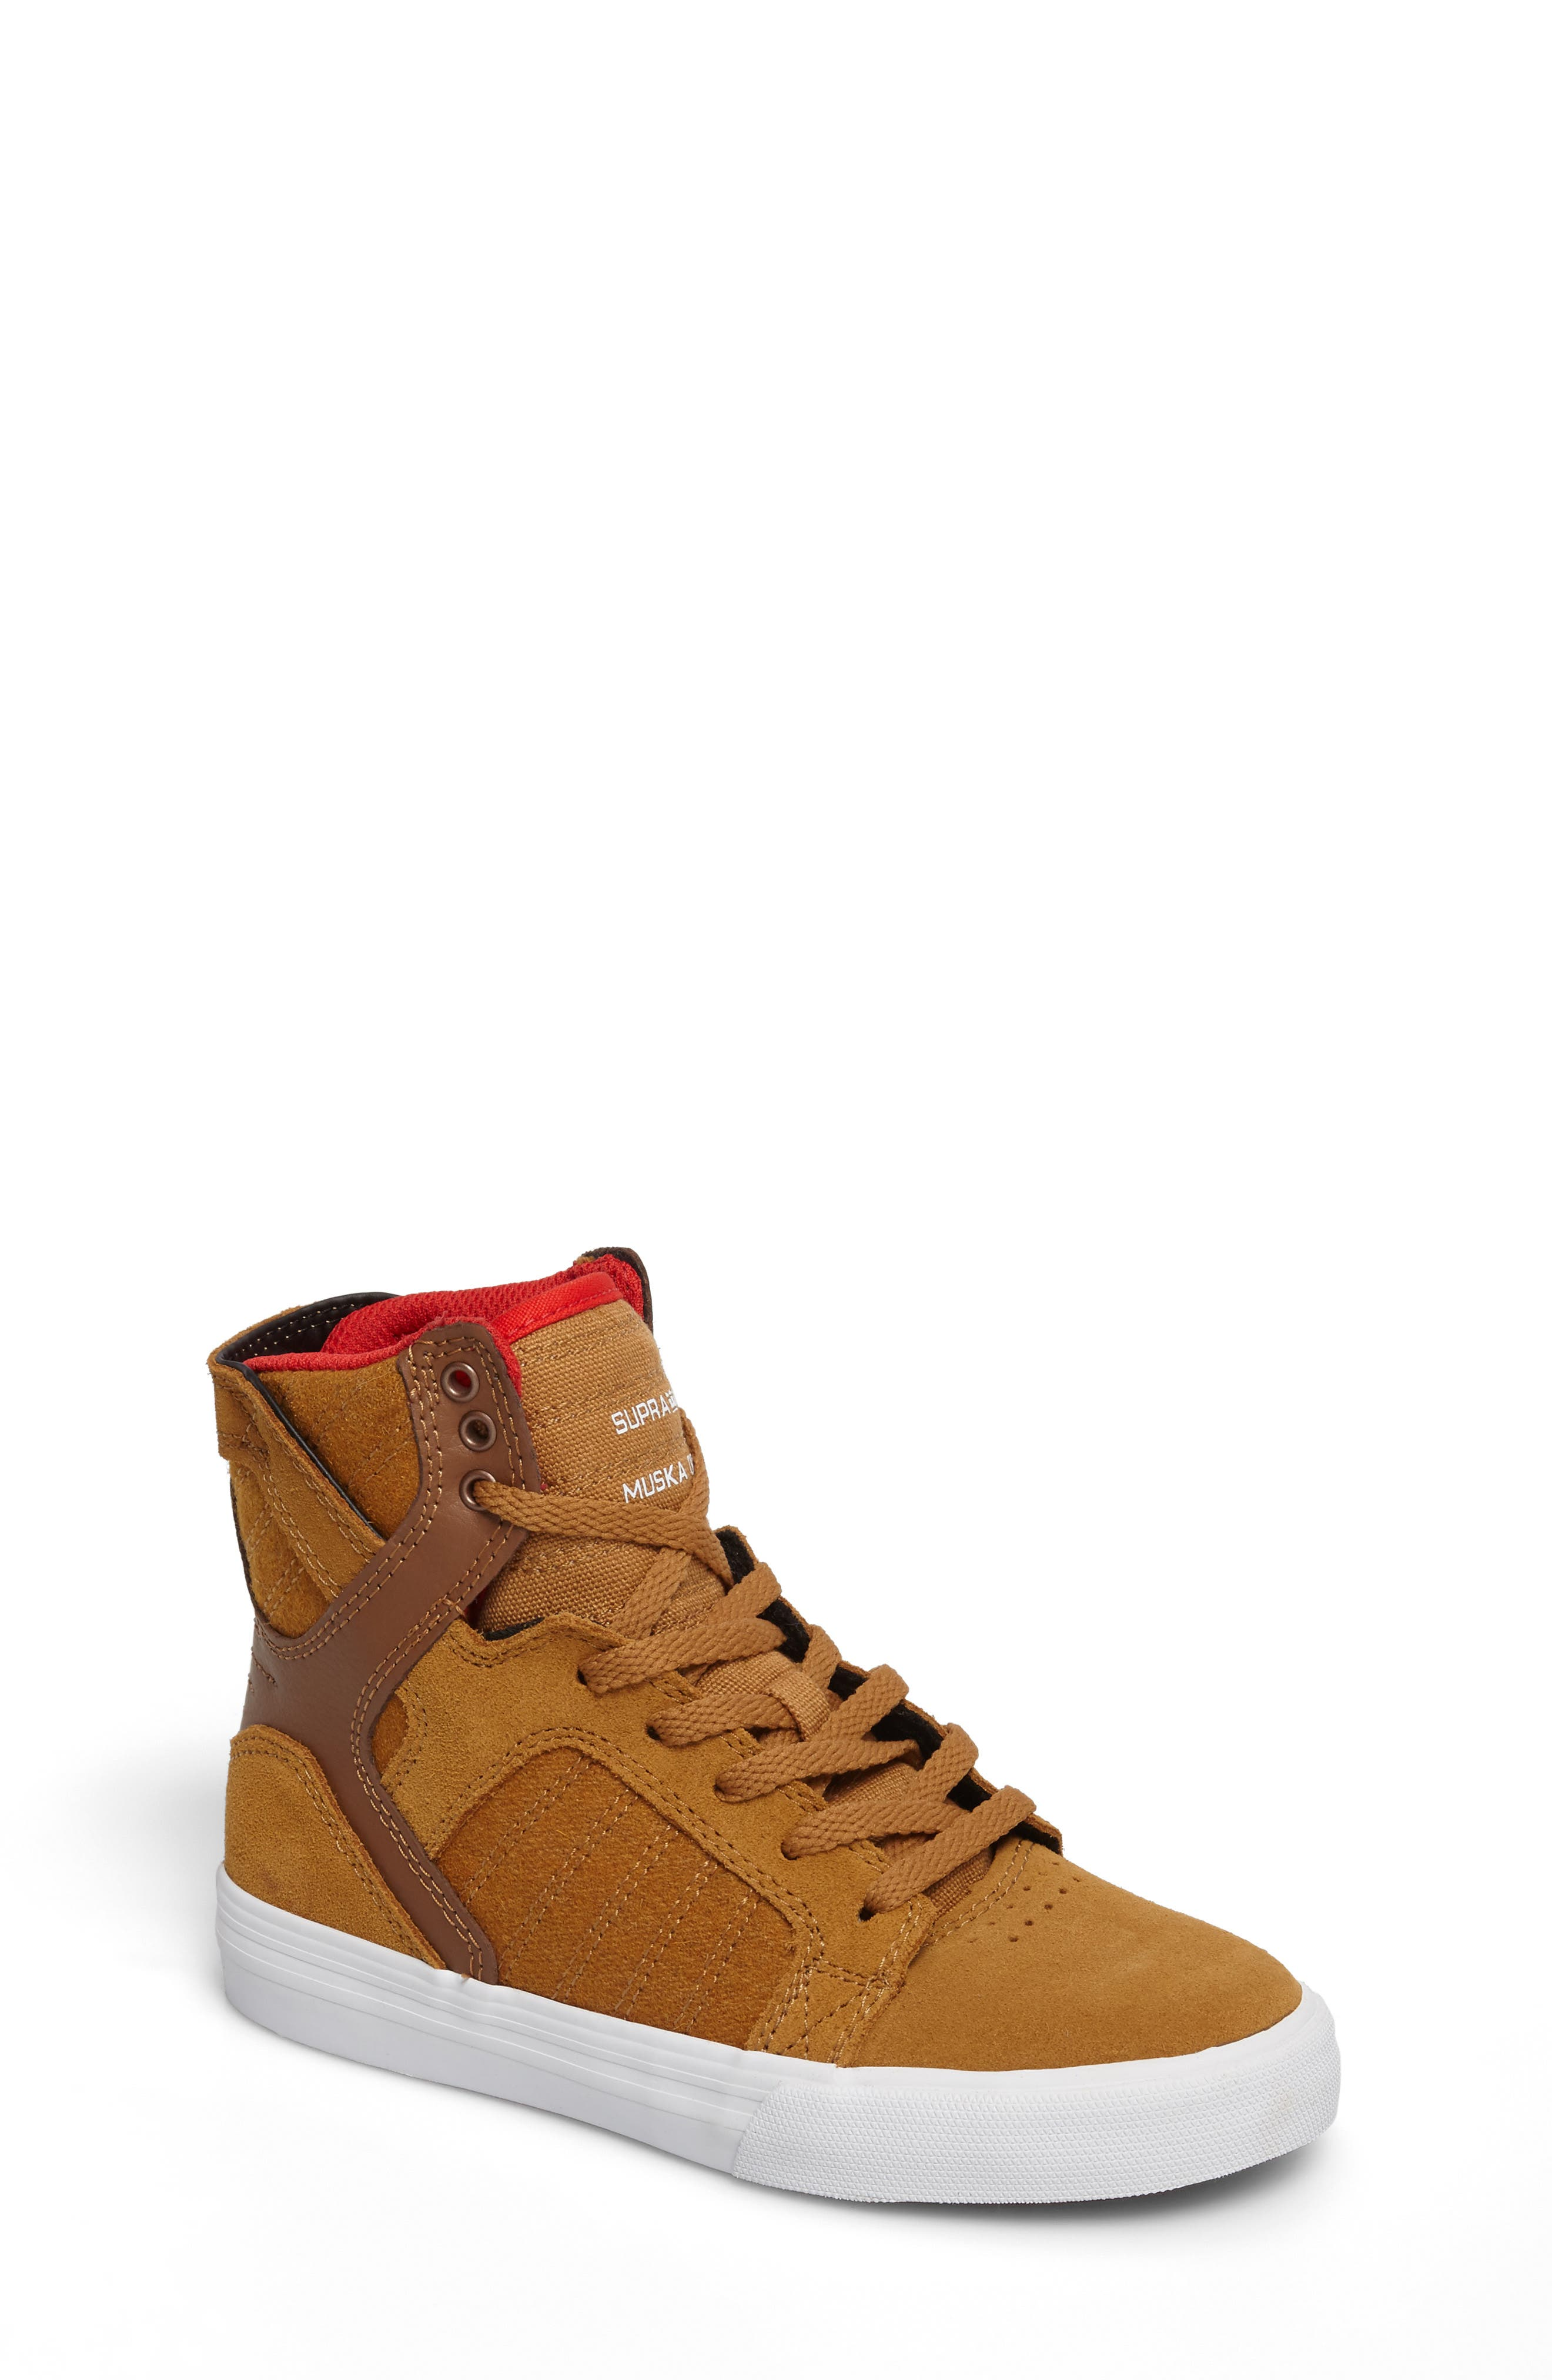 Skytop High Top Sneaker,                             Main thumbnail 1, color,                             257